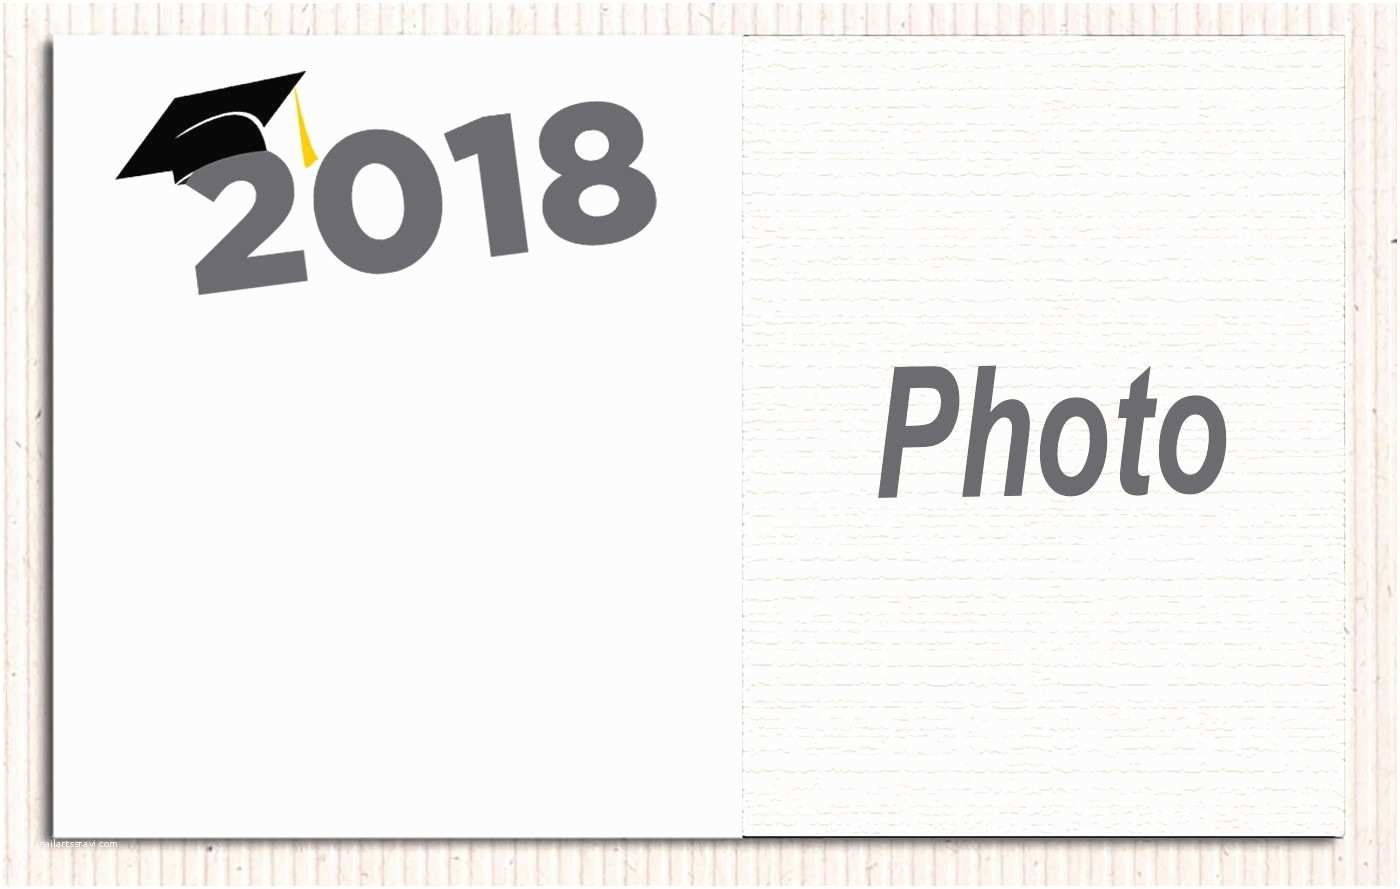 Graduation Invitations 2018 Graduation Invitations What is Secret About Planning for